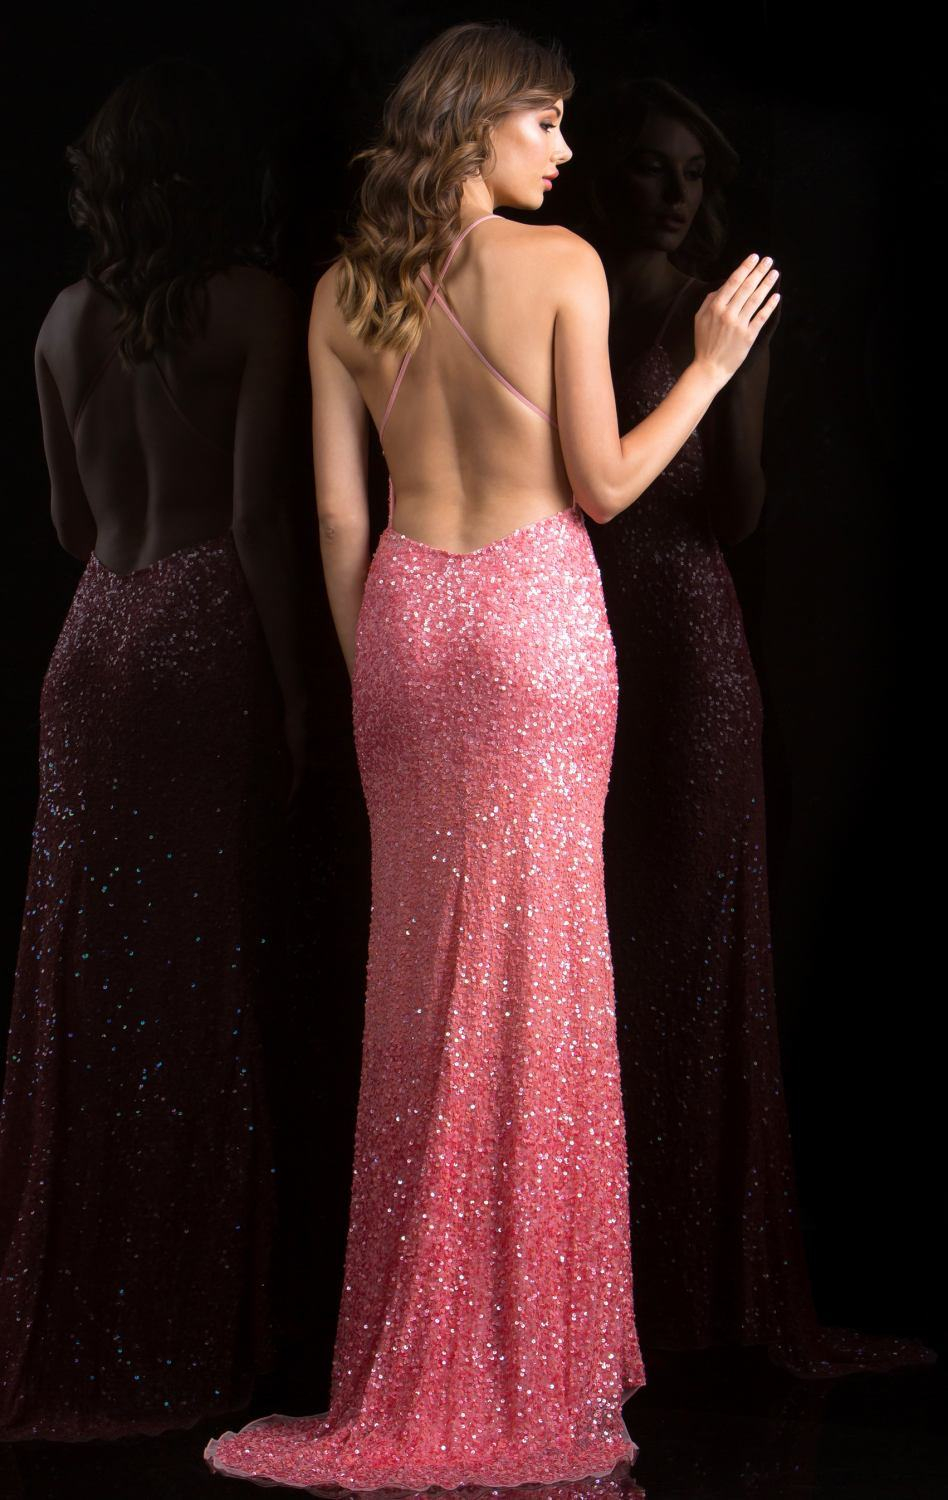 Pink Cocktail Dress Evening Gown Sequins Glitter Prom Dress C48848